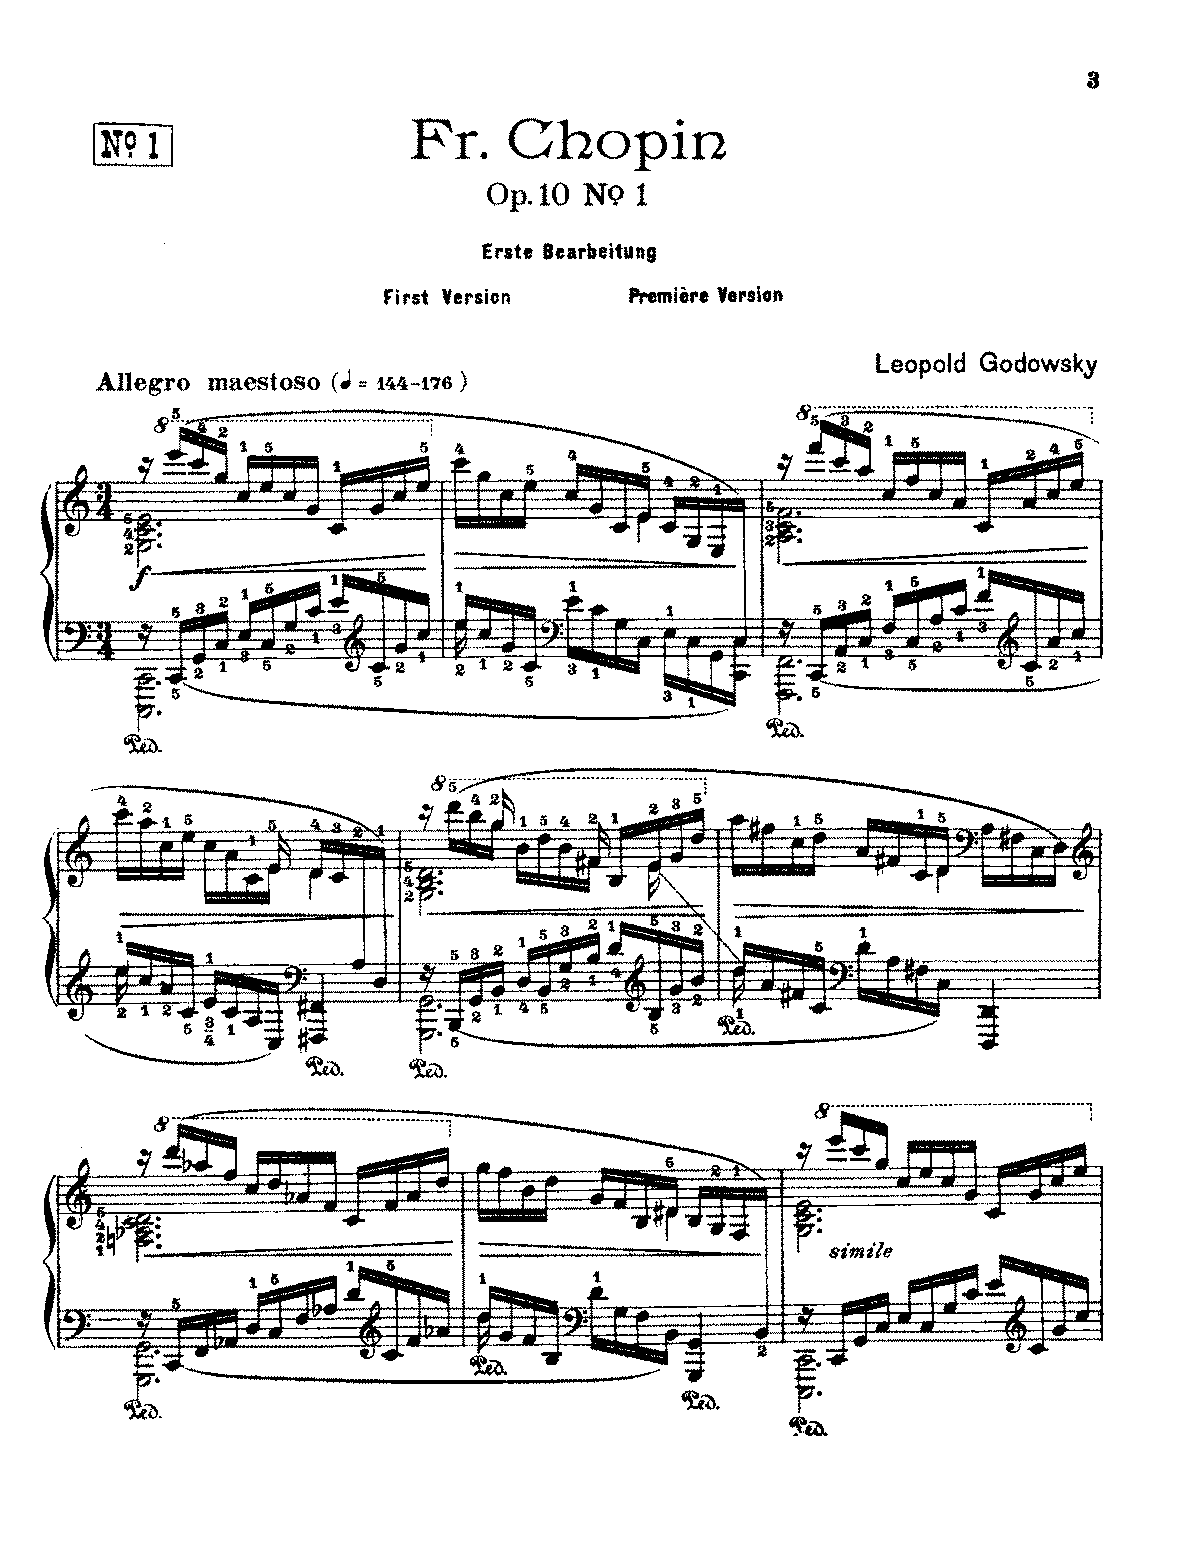 Godowsky chopin 53 complete.pdf